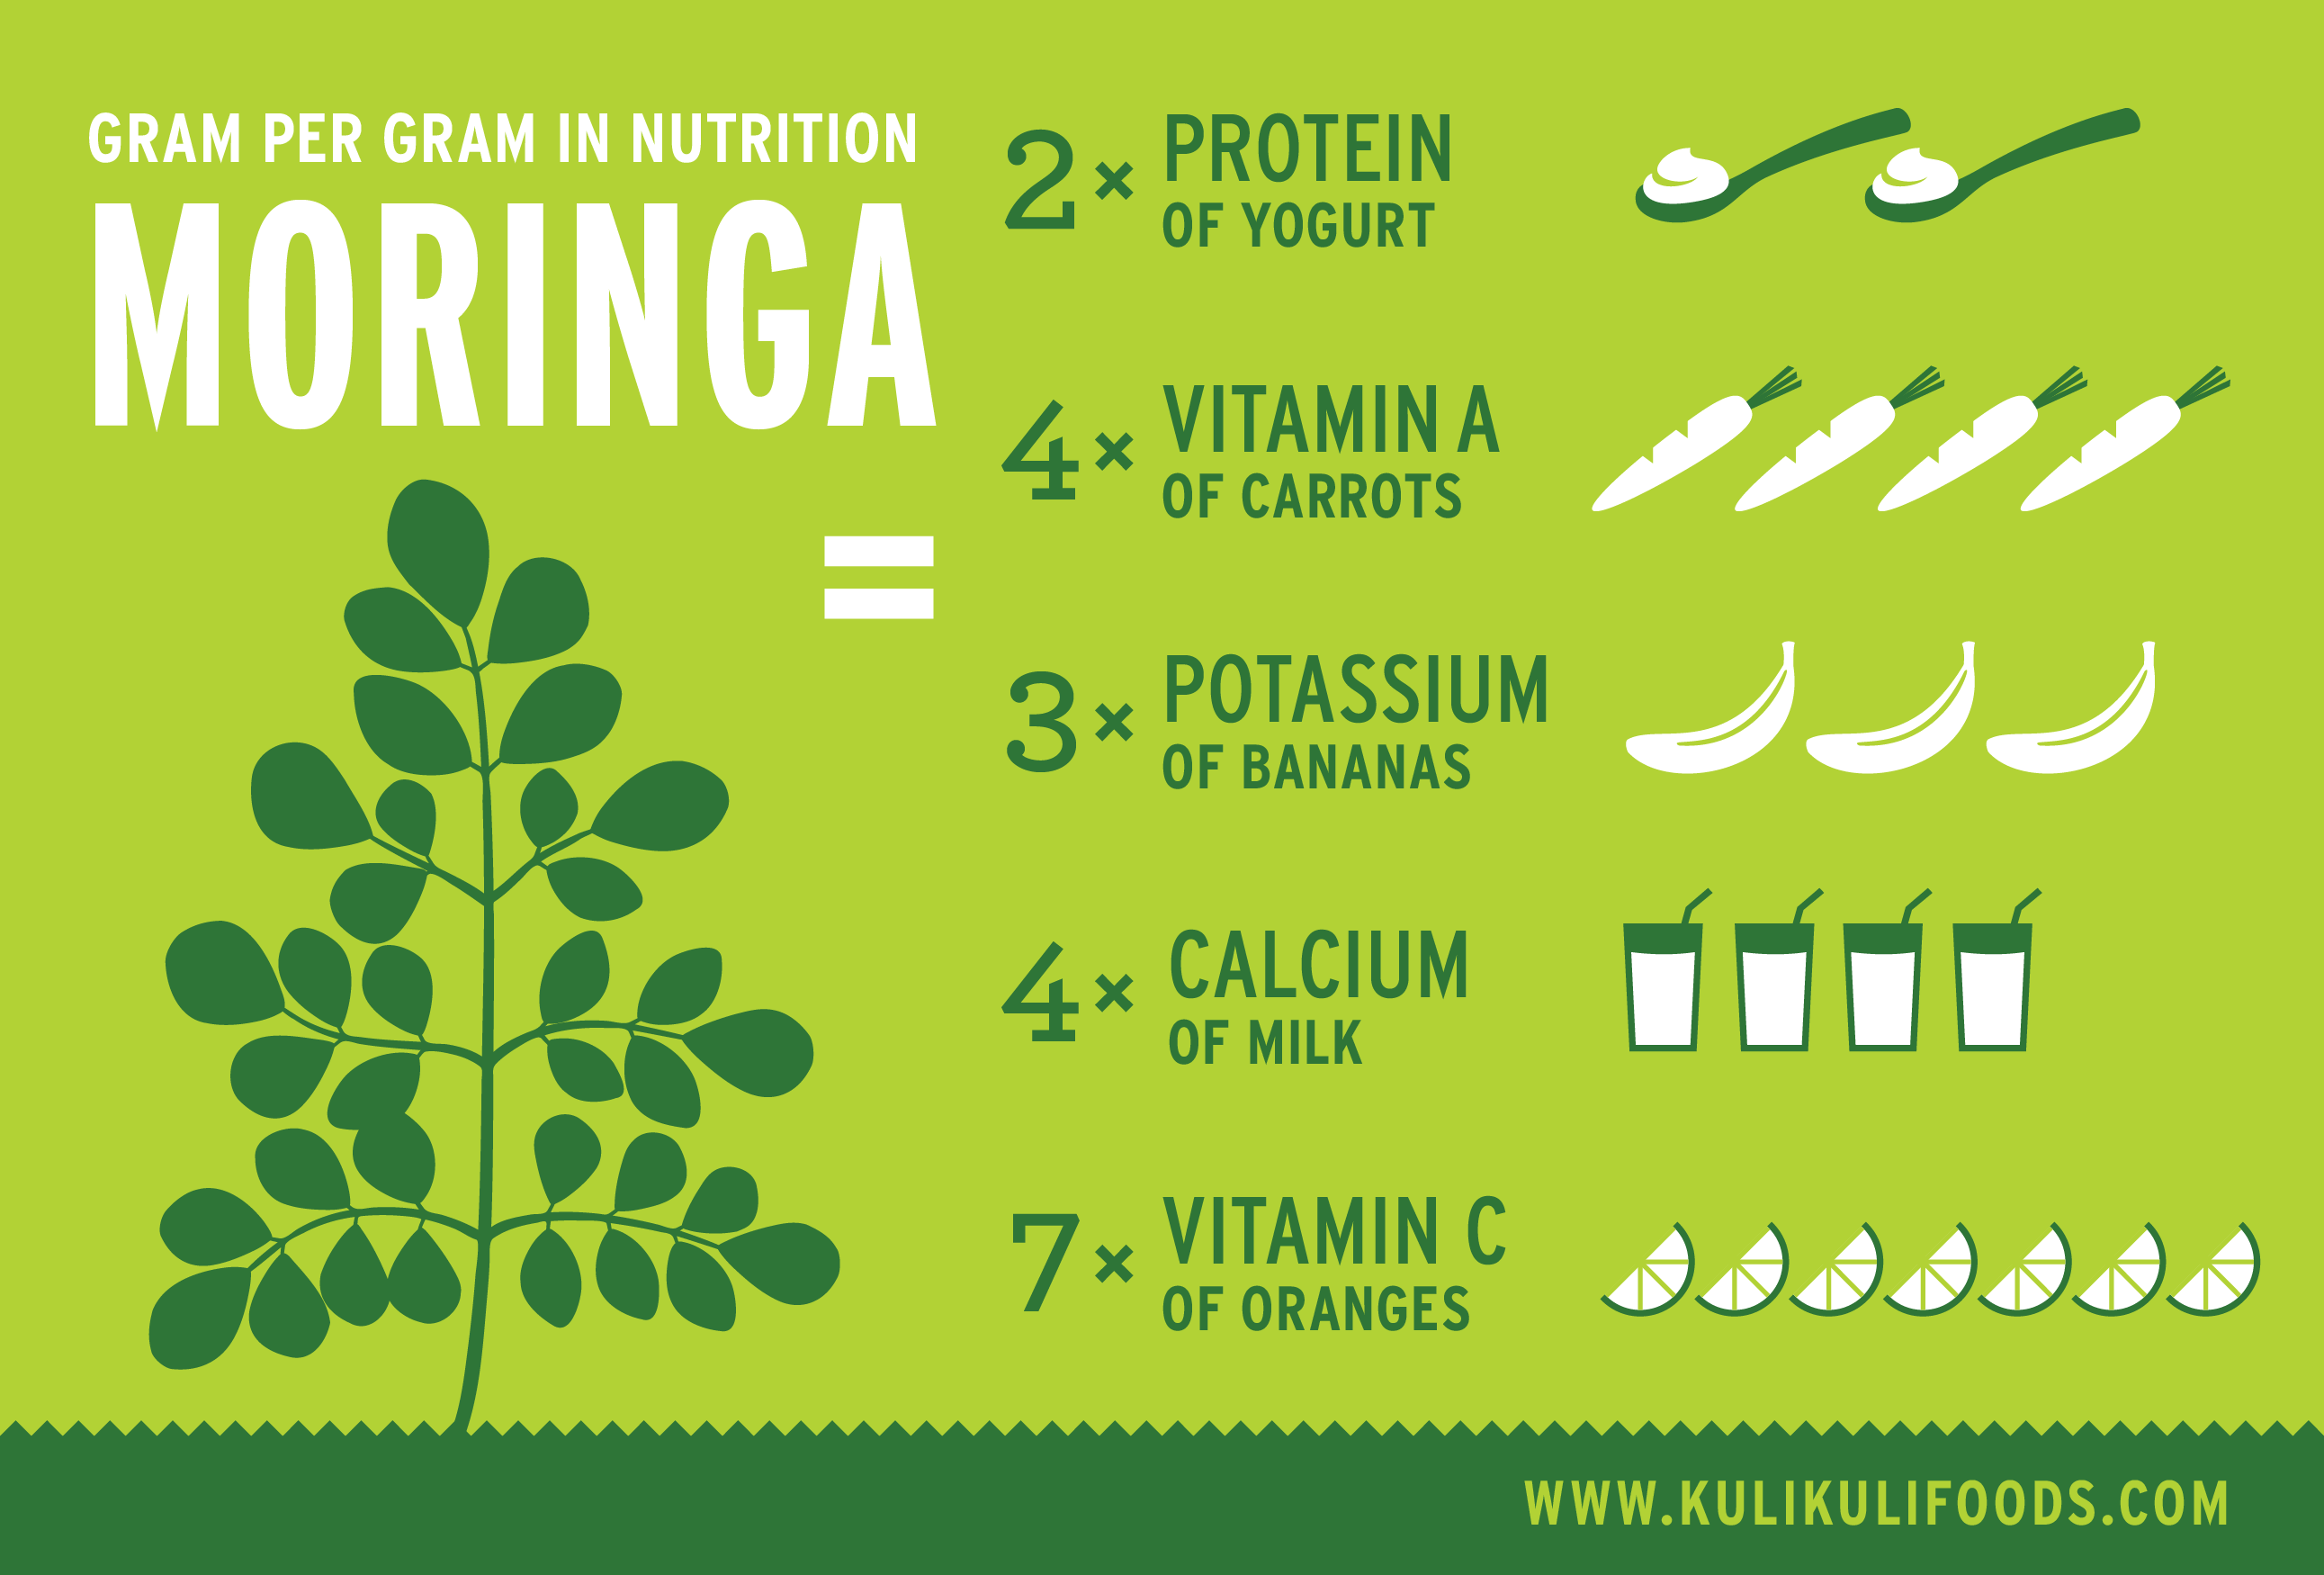 How Moringa Can Help With High Blood Pressure